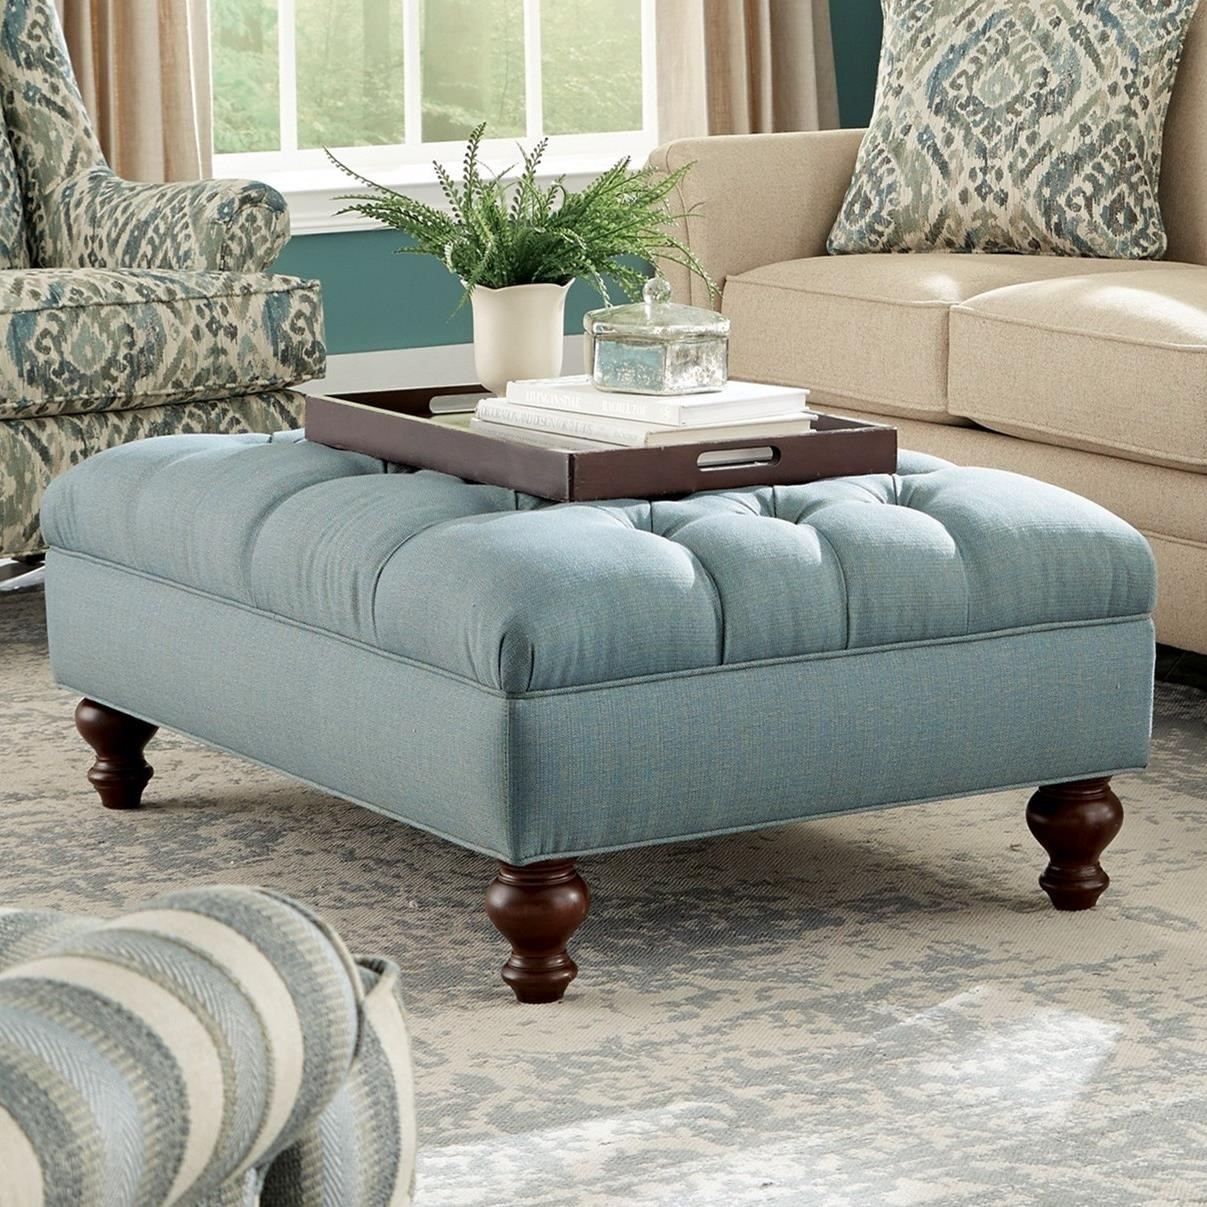 Ottoman In Living Room: Craftmaster Accent Ottomans Extra Large Tufted Ottoman